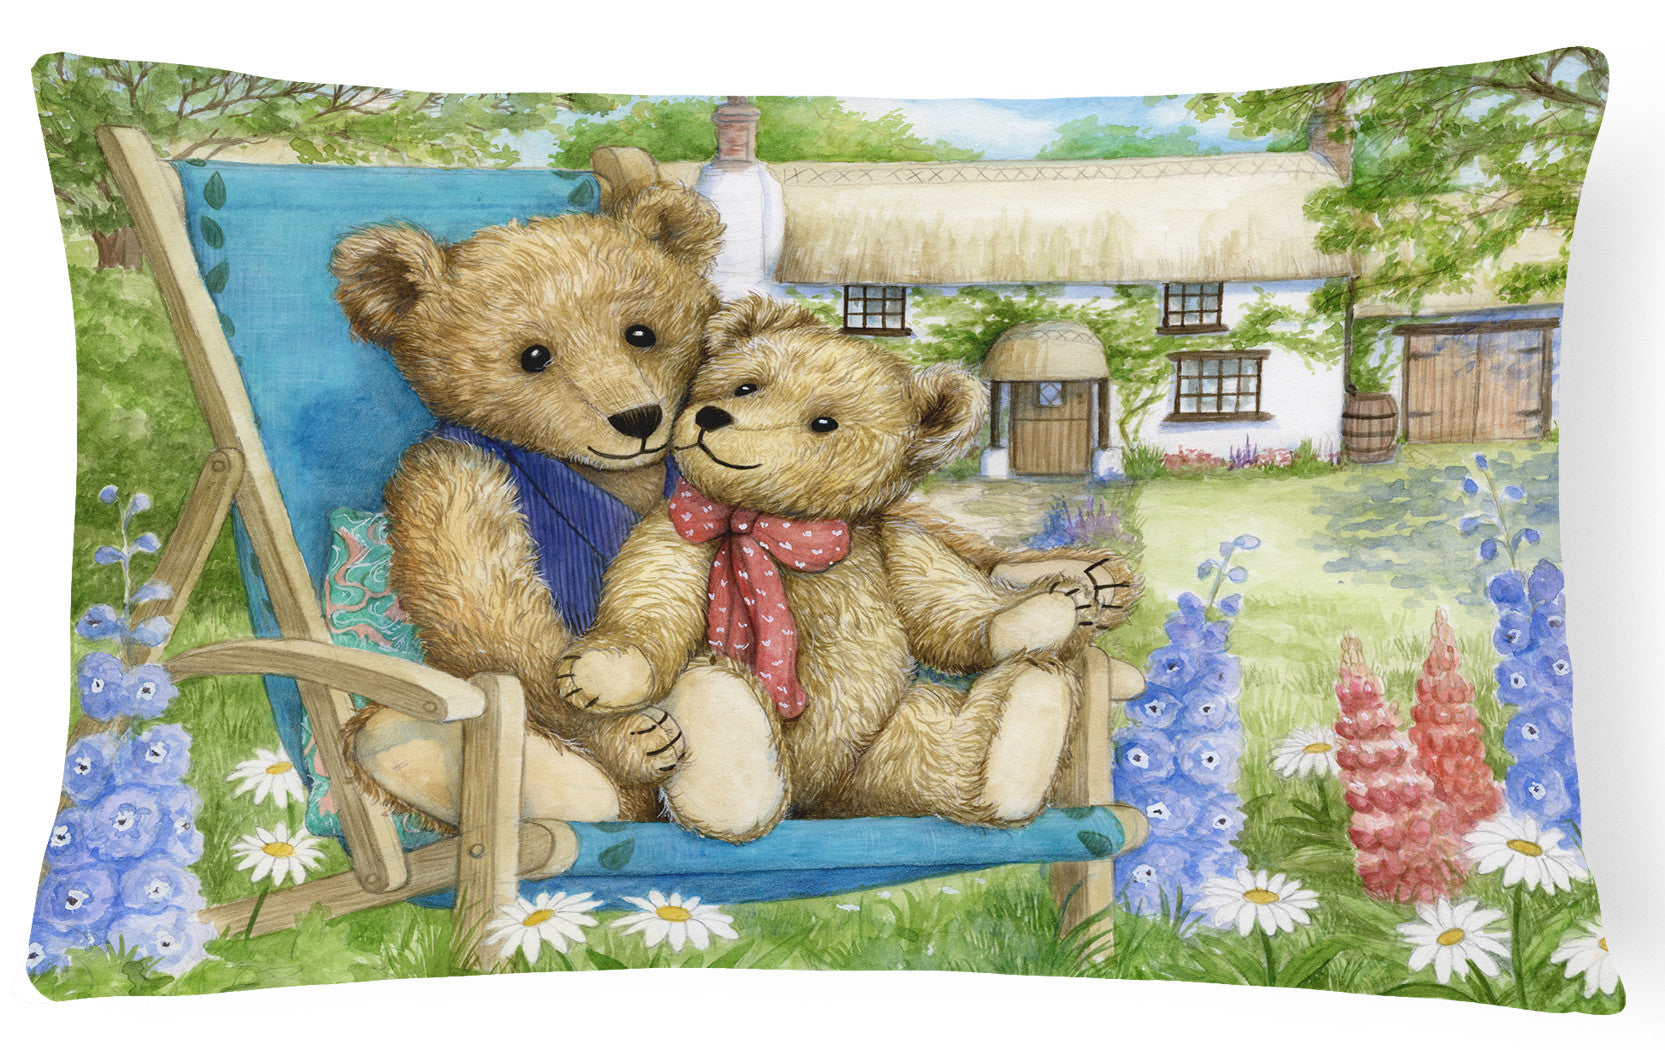 Springtime Teddy Bears in Flowers Fabric Decorative Pillow CDCO0306PW1216 by Caroline's Treasures